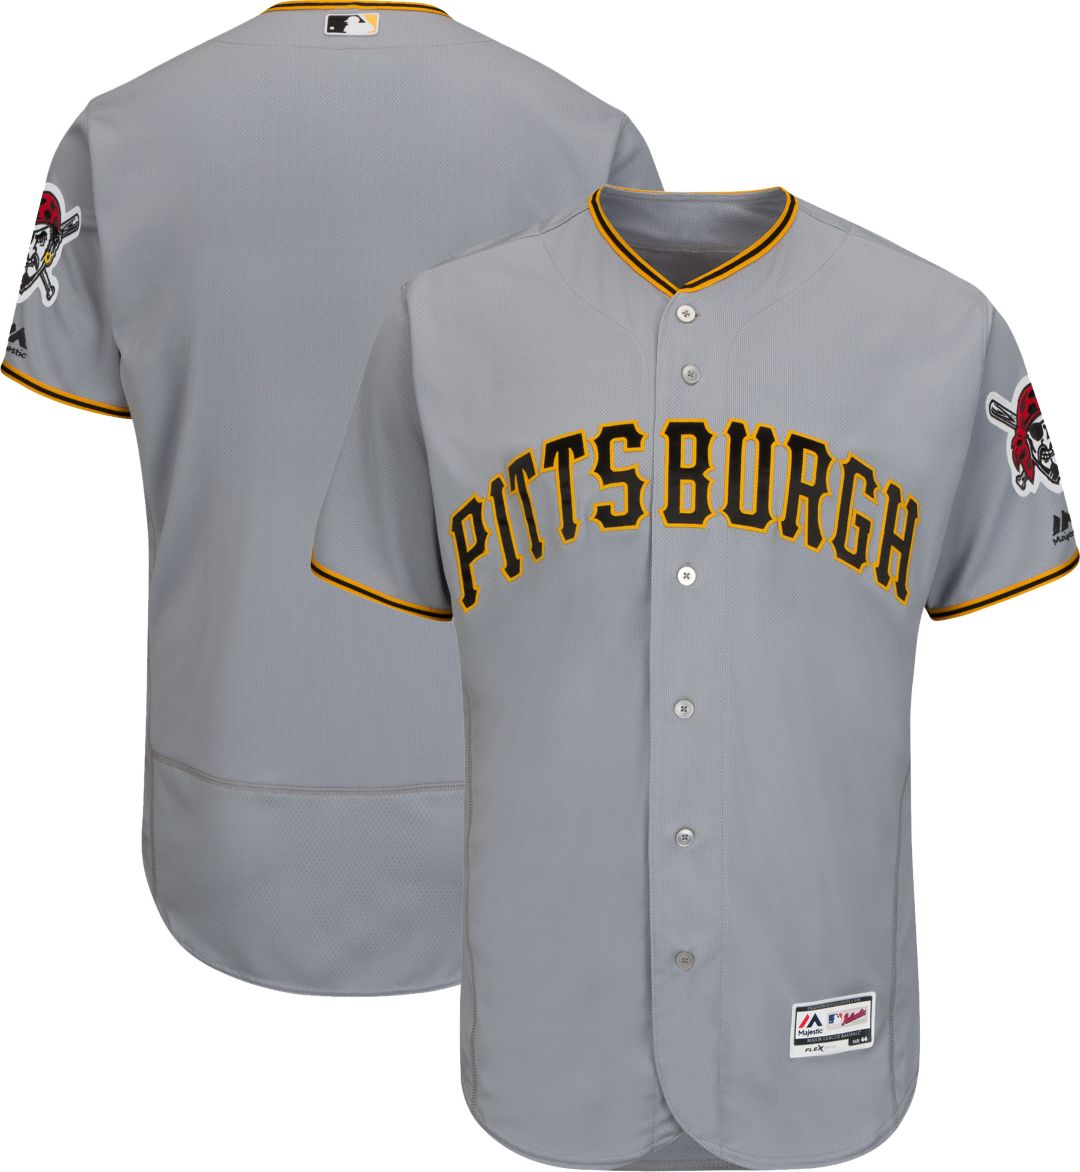 best website 5be60 bd504 Majestic Men's Authentic Pittsburgh Pirates Road Grey Flex Base On-Field  Jersey